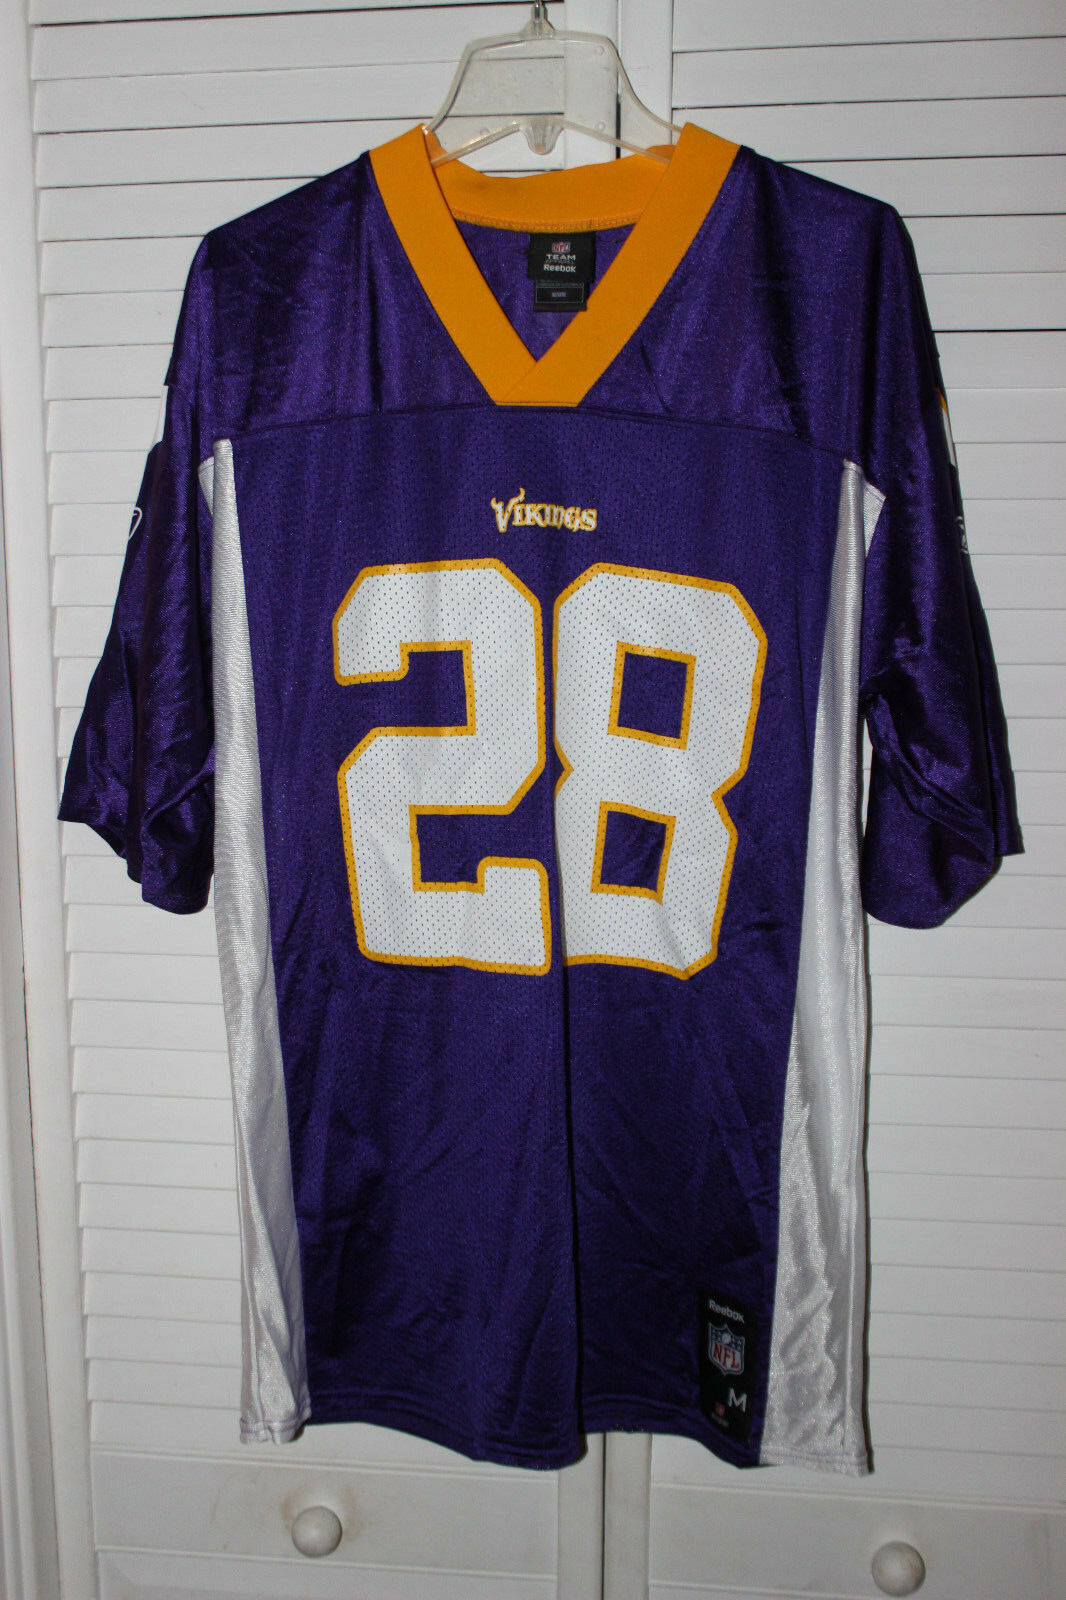 Primary image for NFL TEAM APPAREL MINNESOTA VIKINGS #28 ADRIAN PETERSON FOOTBALL JERSEY ADULT M